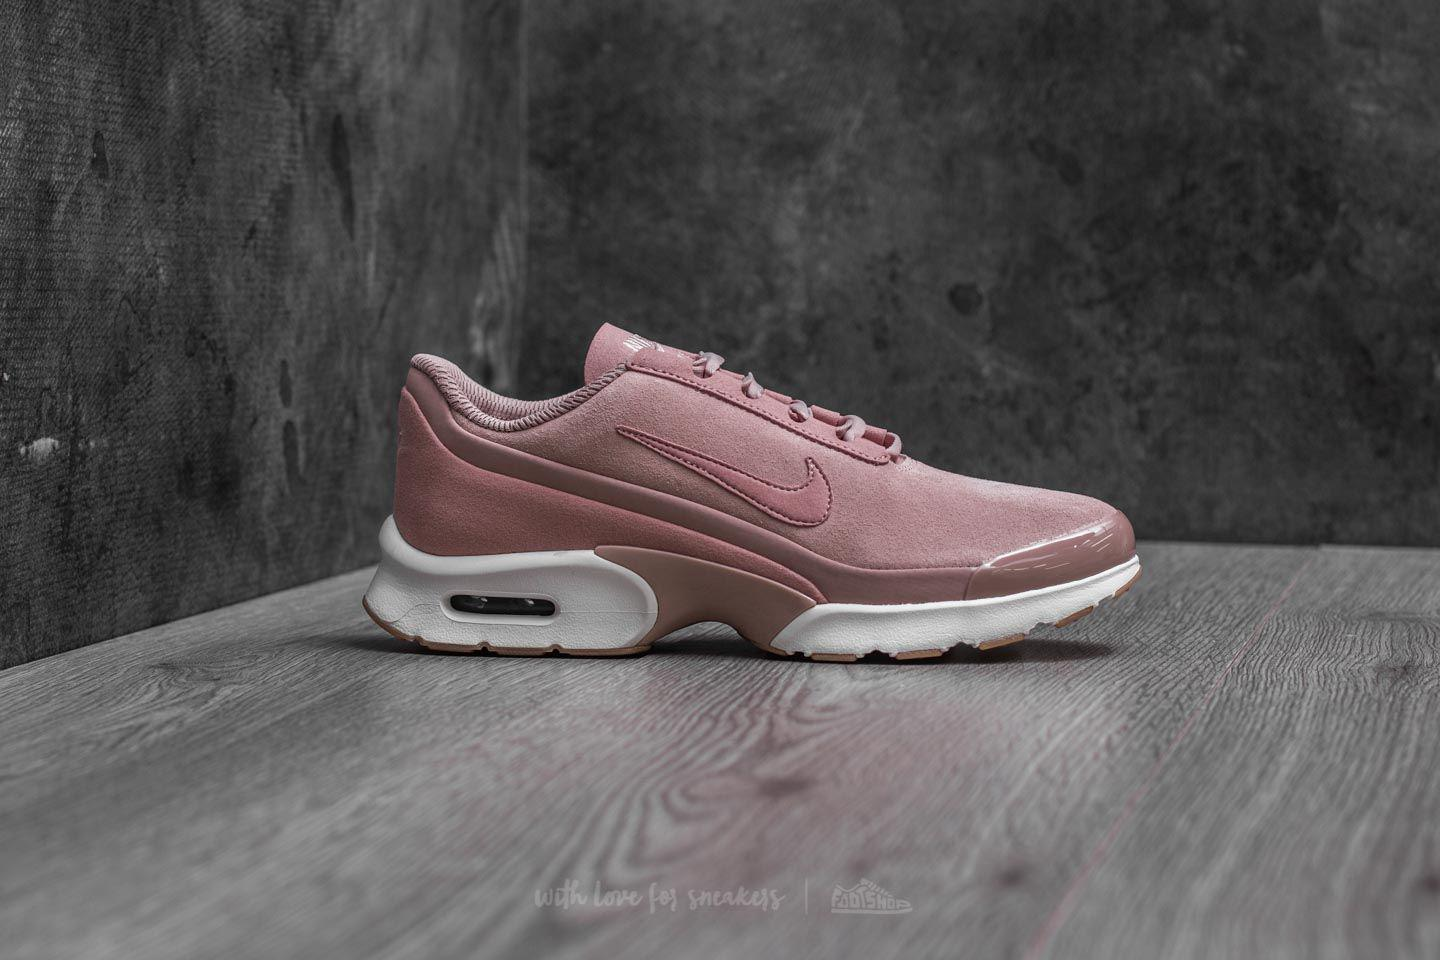 5c85b88038e1 Lyst - Nike W Air Max Jewell Se Particle Pink  Particle Pink in Pink